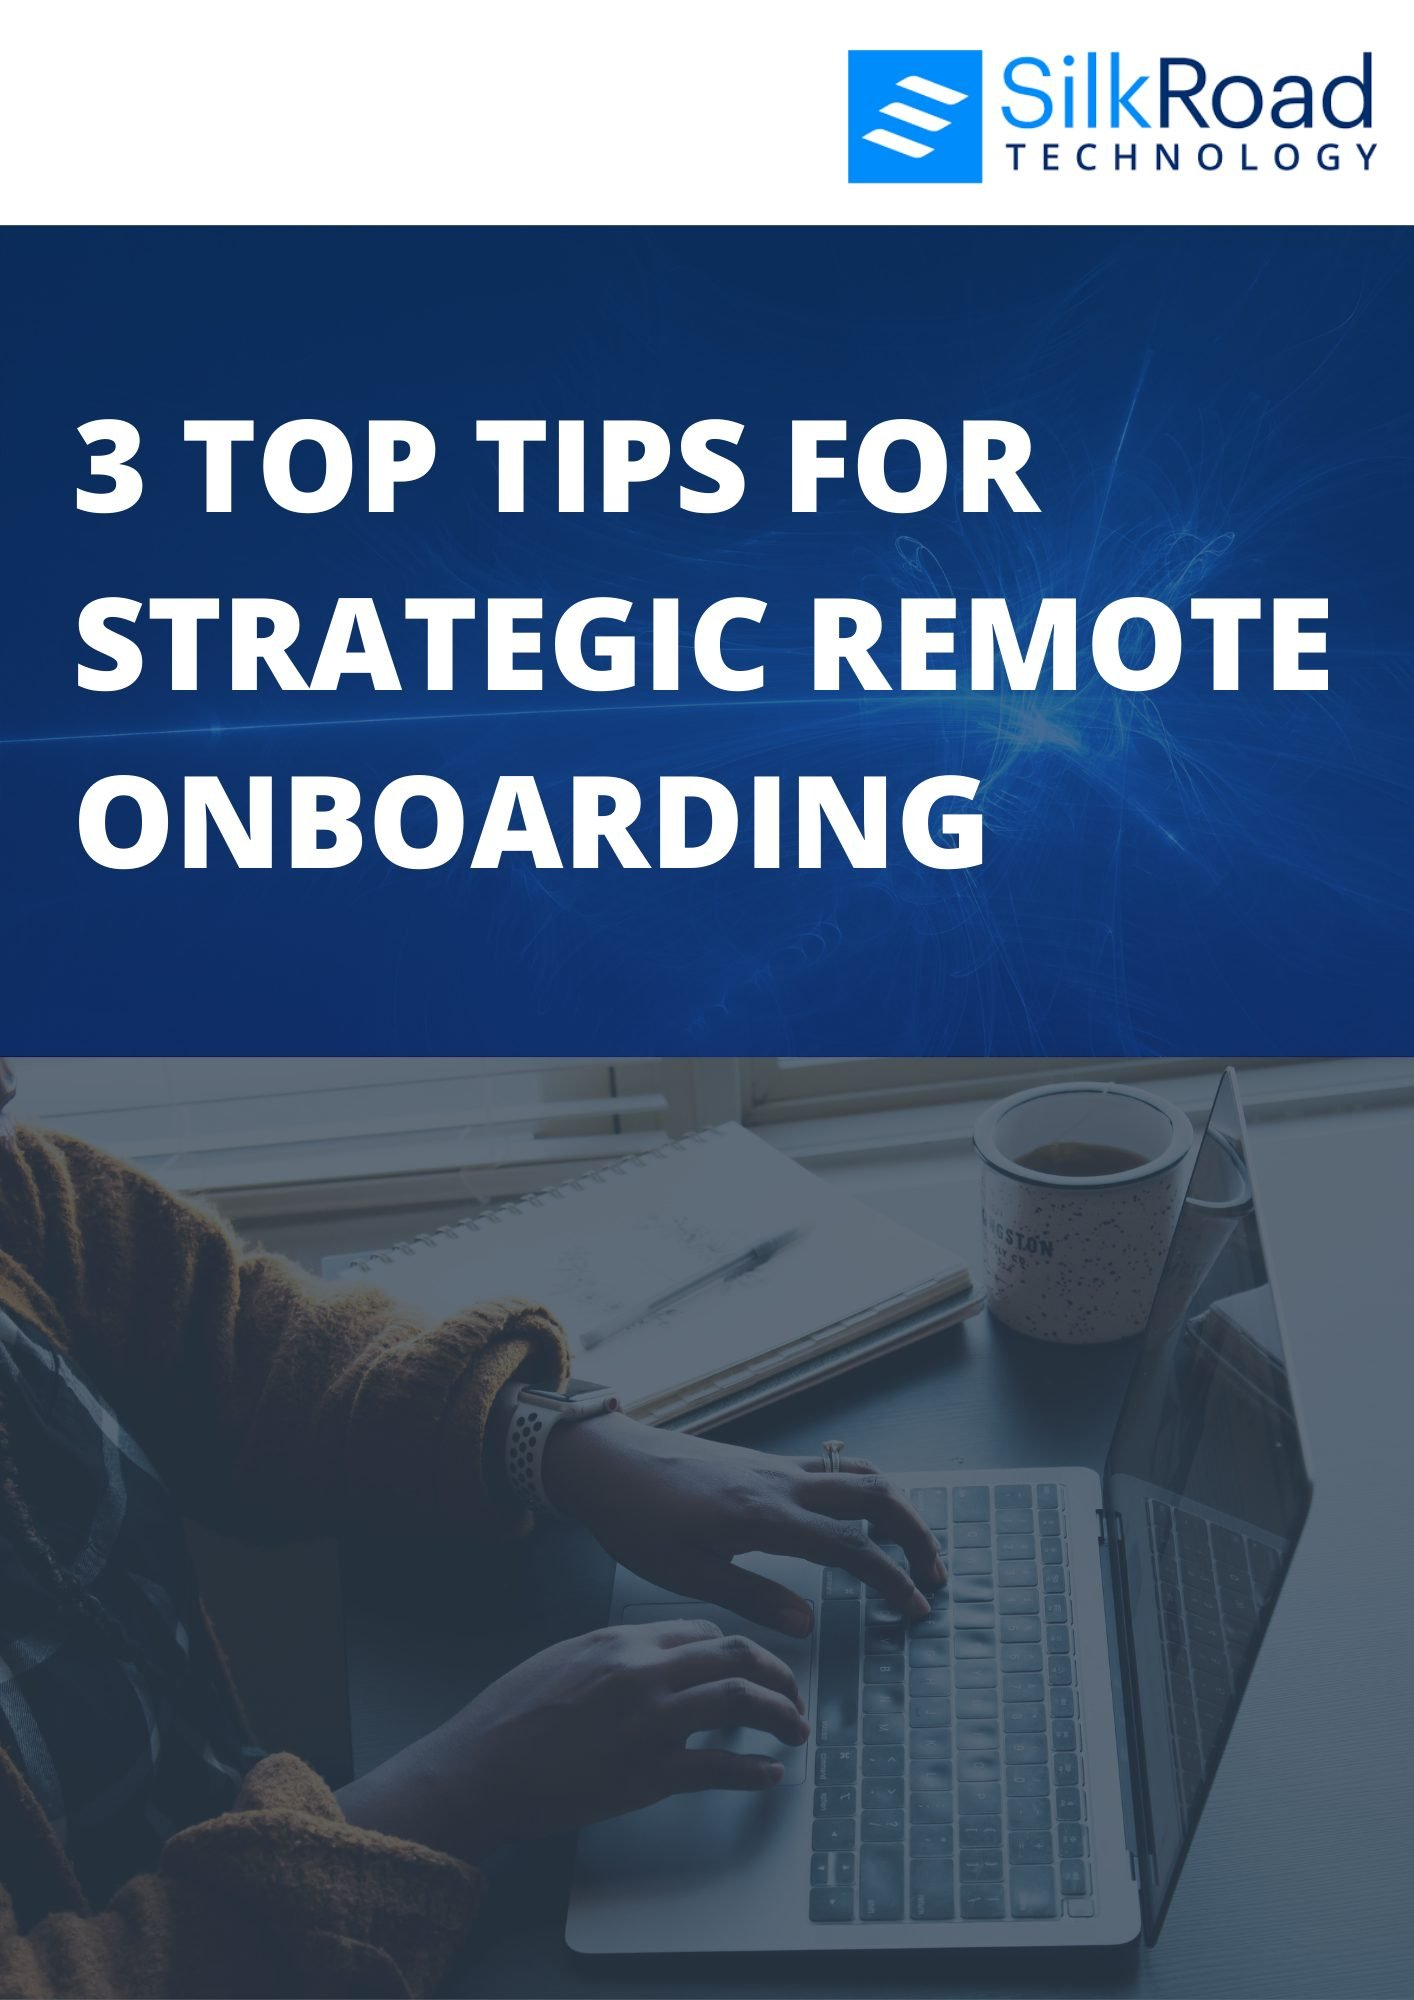 3-top-tips-for-strategic-remote-onboarding-silver-cloud-silkroad-technology